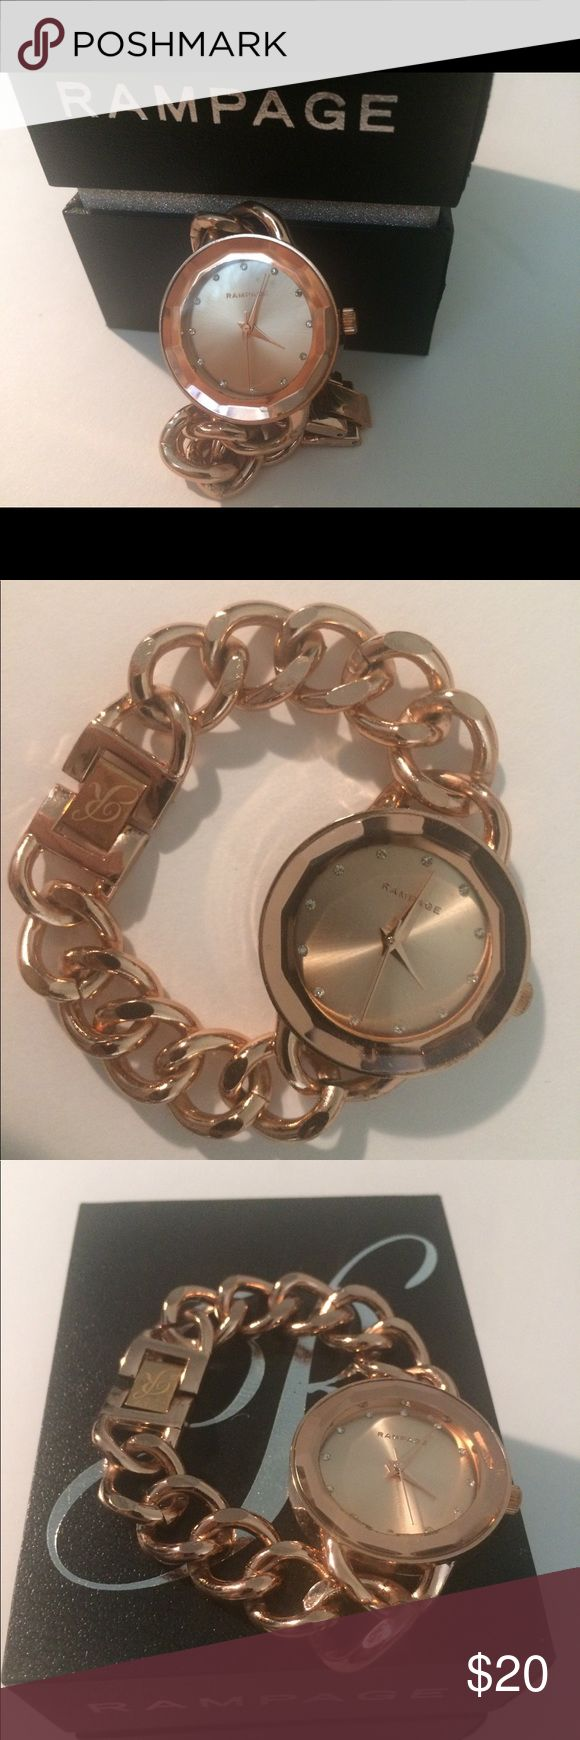 Rampage rose gold watch w crystal accents This is a gorgeous, brand new Rampage watch in a beautiful rose gold tone with crystal accents and dainty chainlike bracelet. I bought it for myself thinking I'd try to become the kind of person who wears a watch but you can't teach an old dog new tricks, you know? Though it makes me sad to part with this beauty, I'm just not a watch-wearing kind of gal. Never used, comes in original box. Rampage Accessories Watches